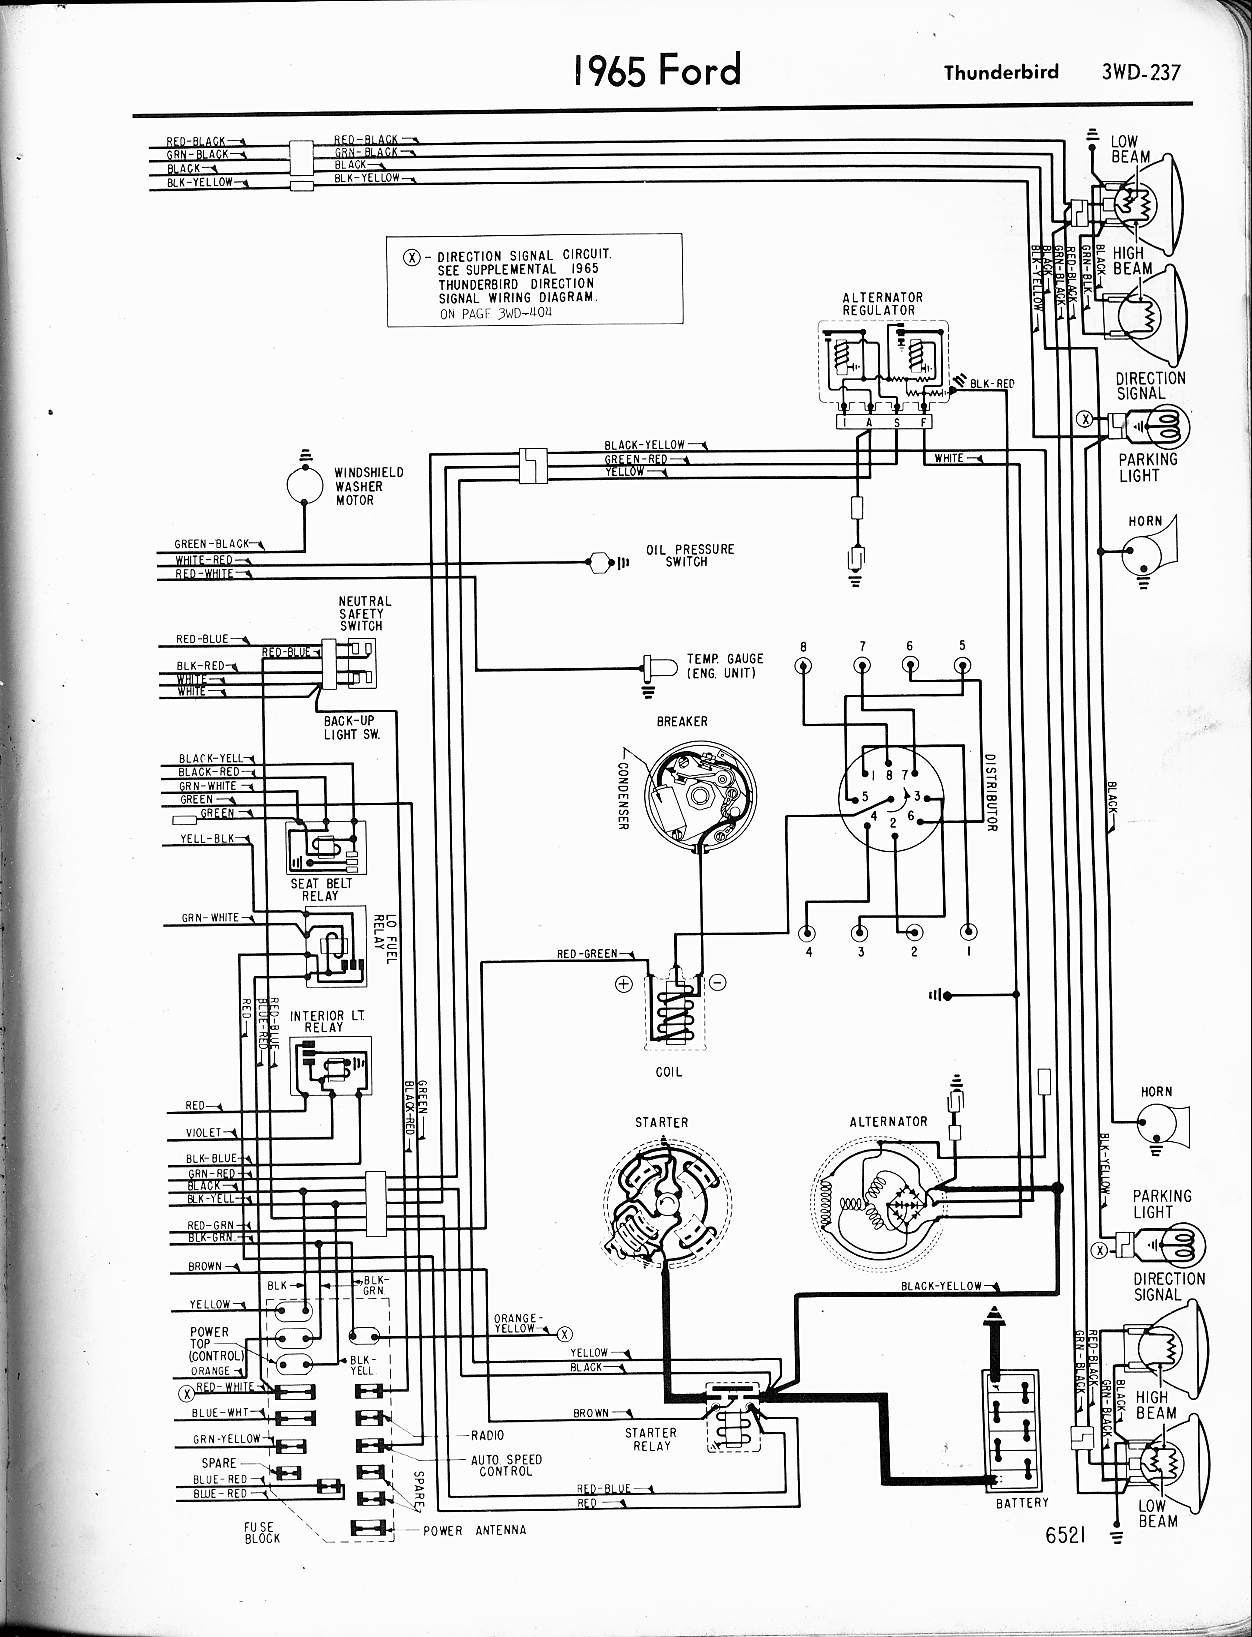 speed tech lights wiring diagram Collection-Speed Tech Lights Wiring Diagram Speed Tech Lights Wiring Diagram Awesome 57 65 ford Wiring 5-f